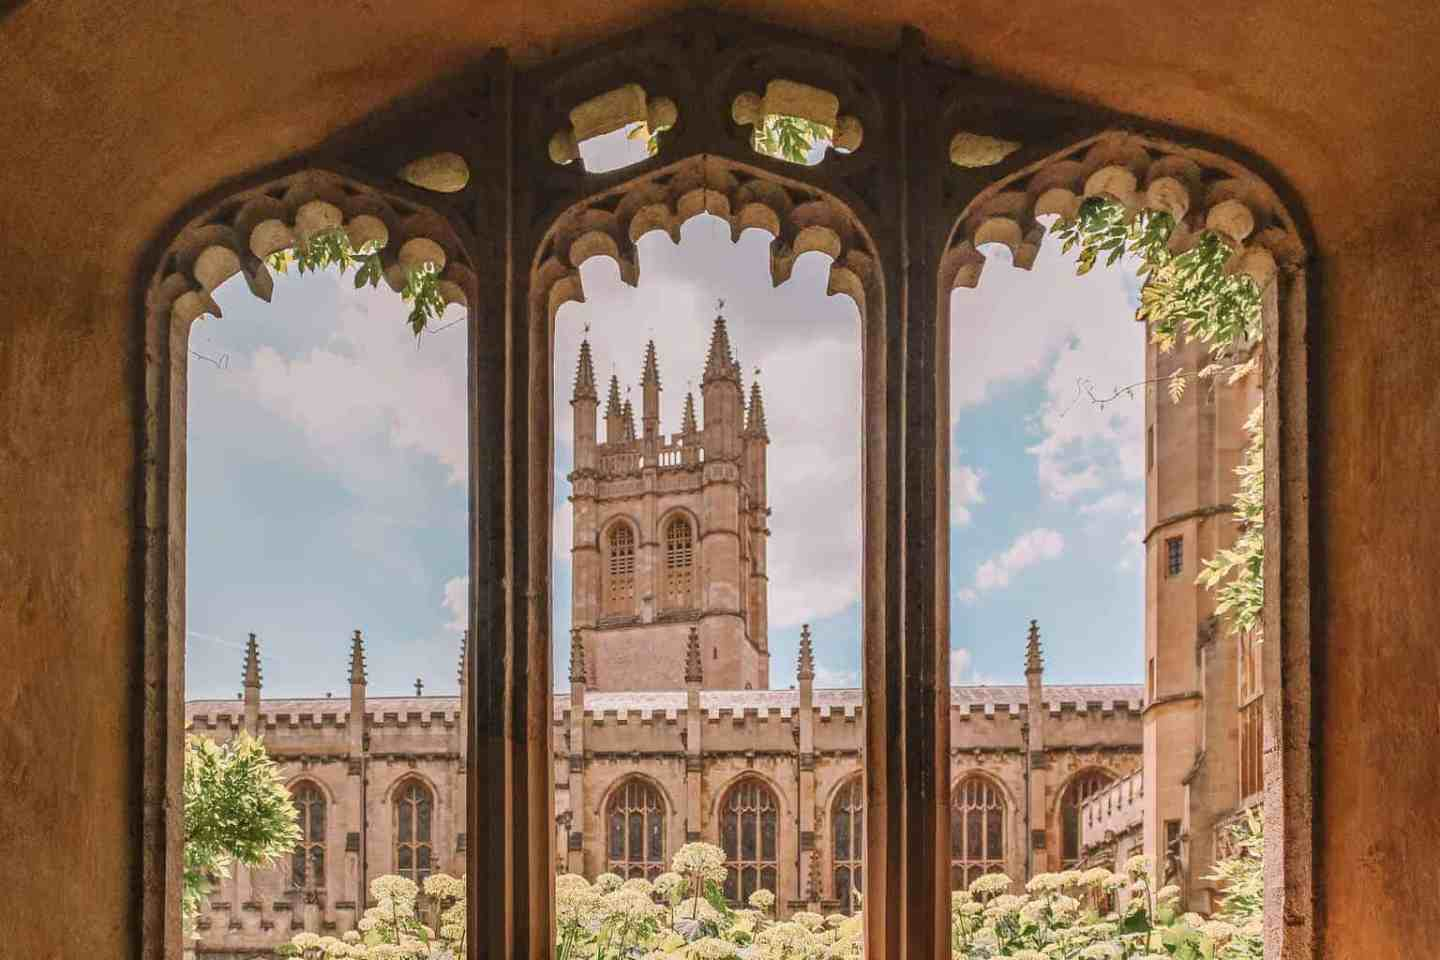 Magdalen Tower - 10 Most Beautiful Colleges at Oxford University According to a Student